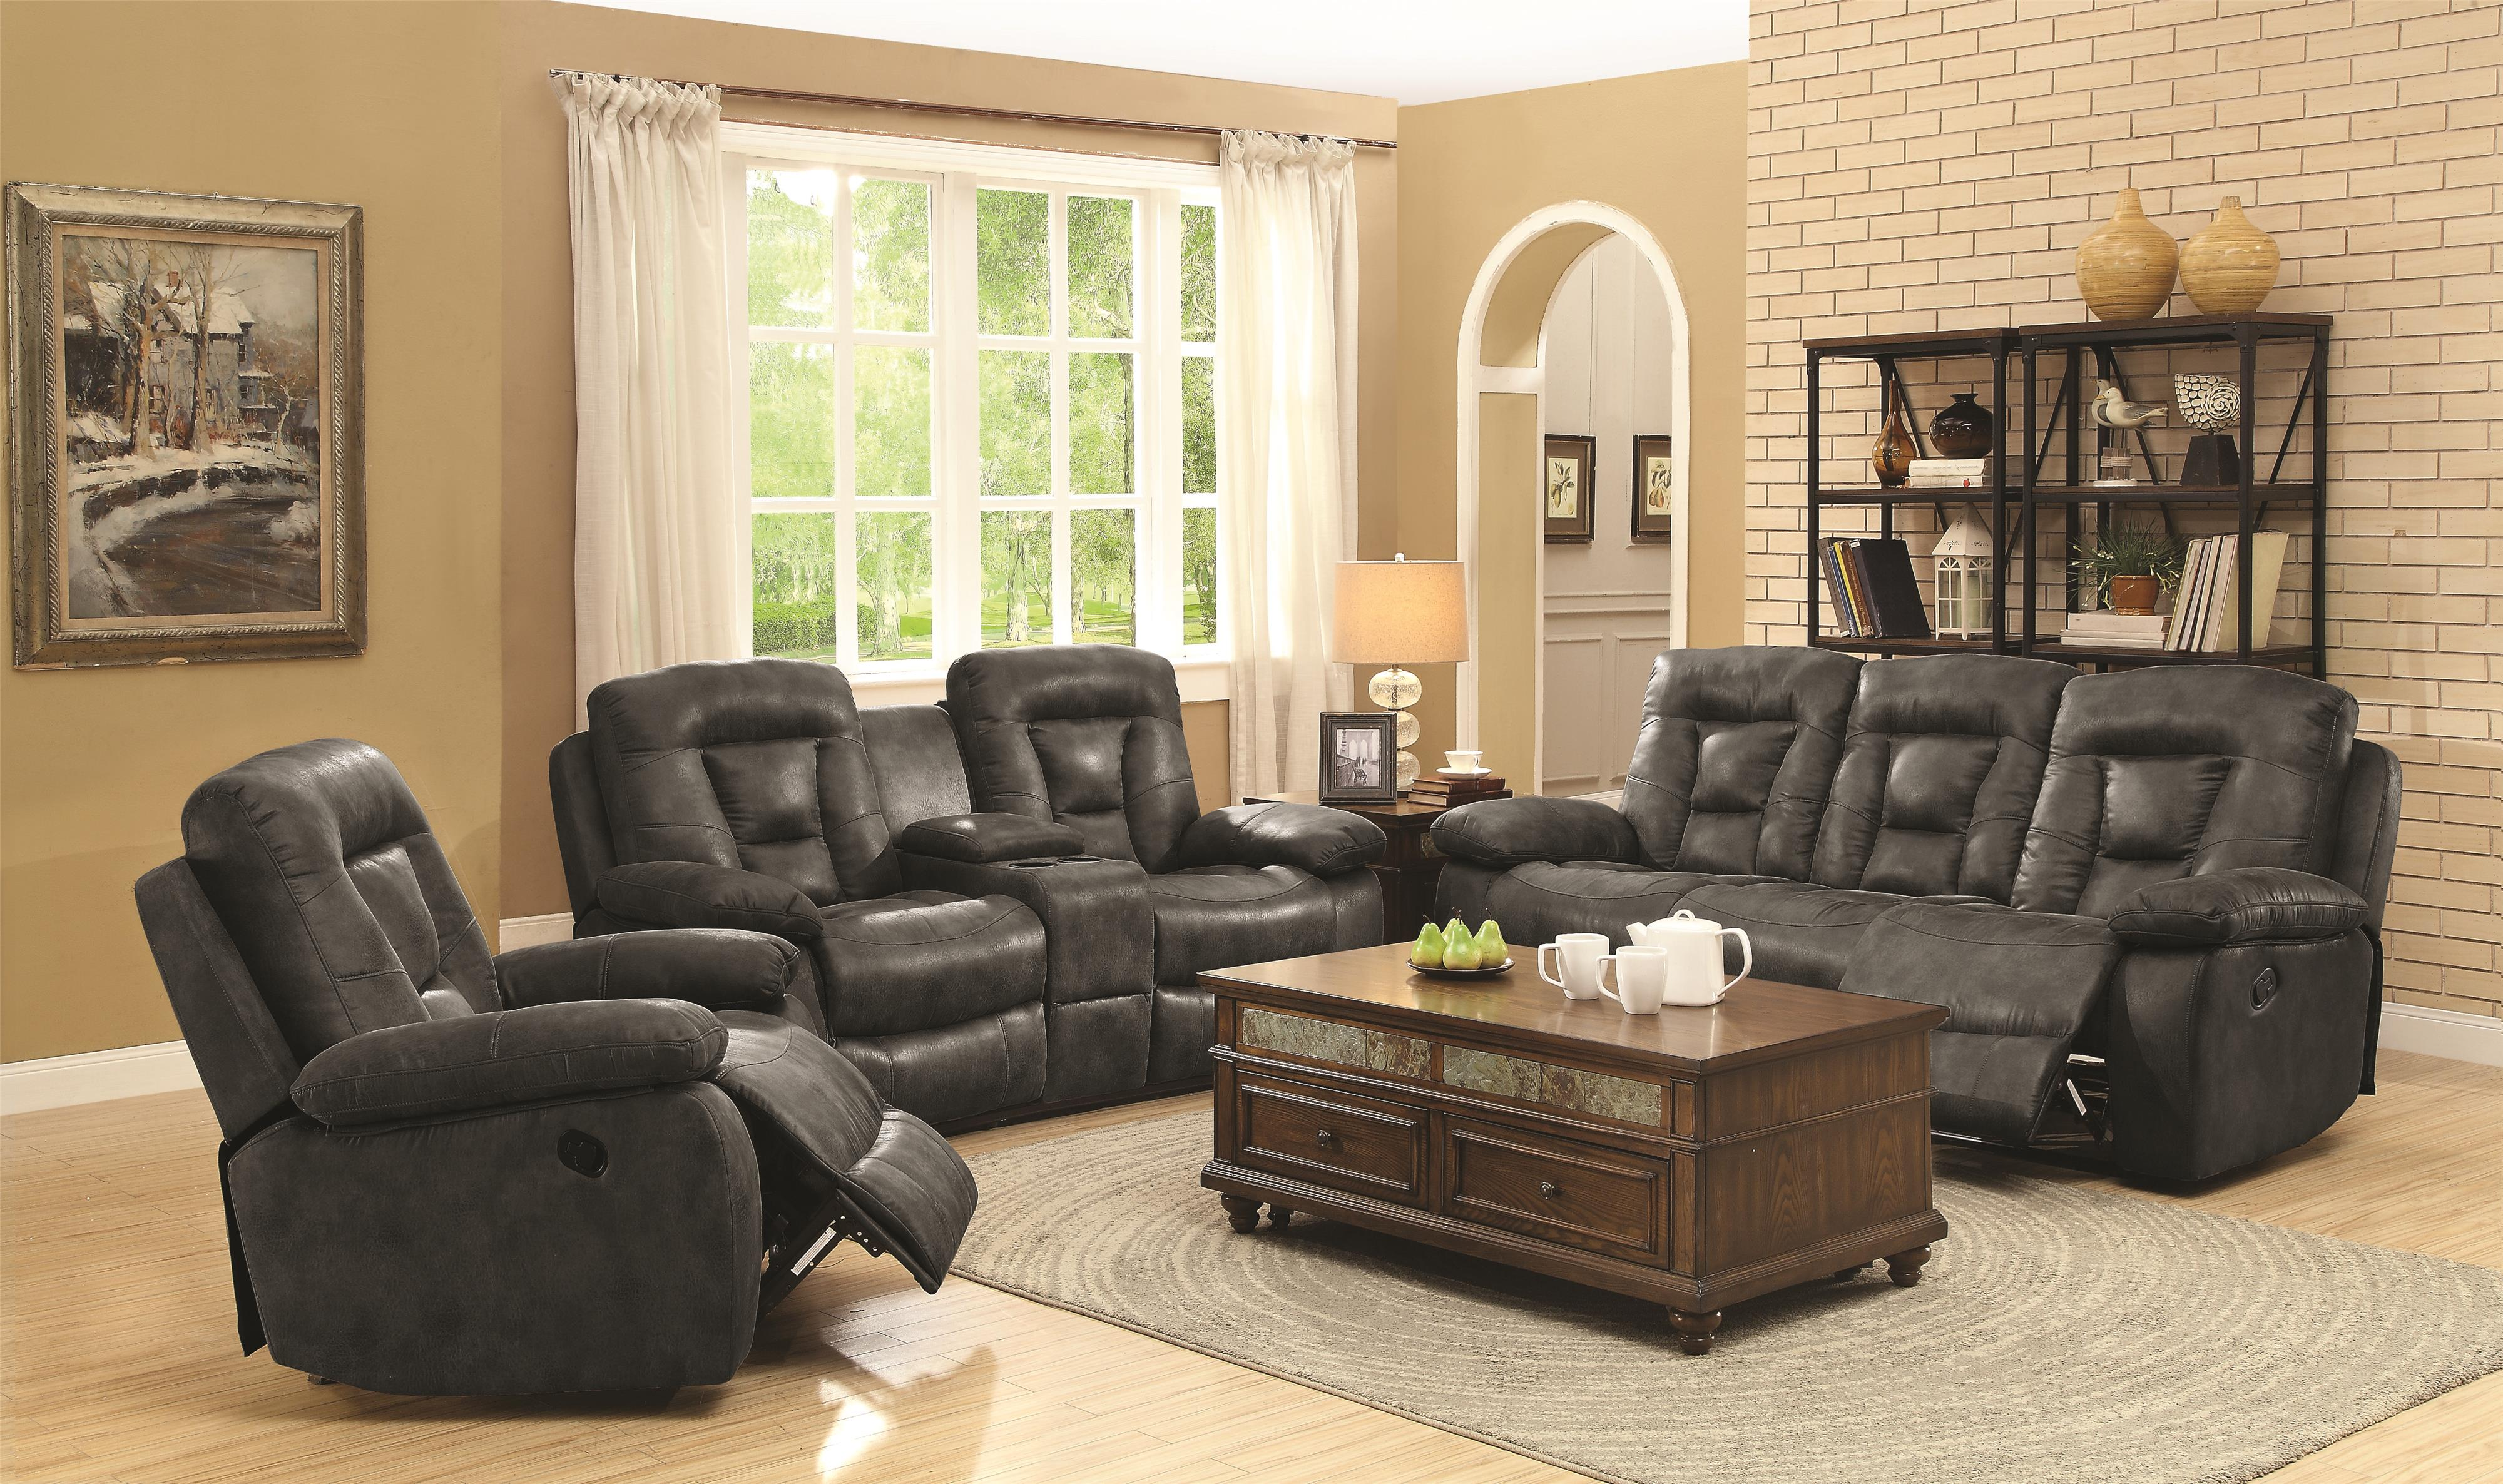 Coaster Evensky Reclining Living Room Group - Item Number: 60186-Charcoal Living Room Group 1